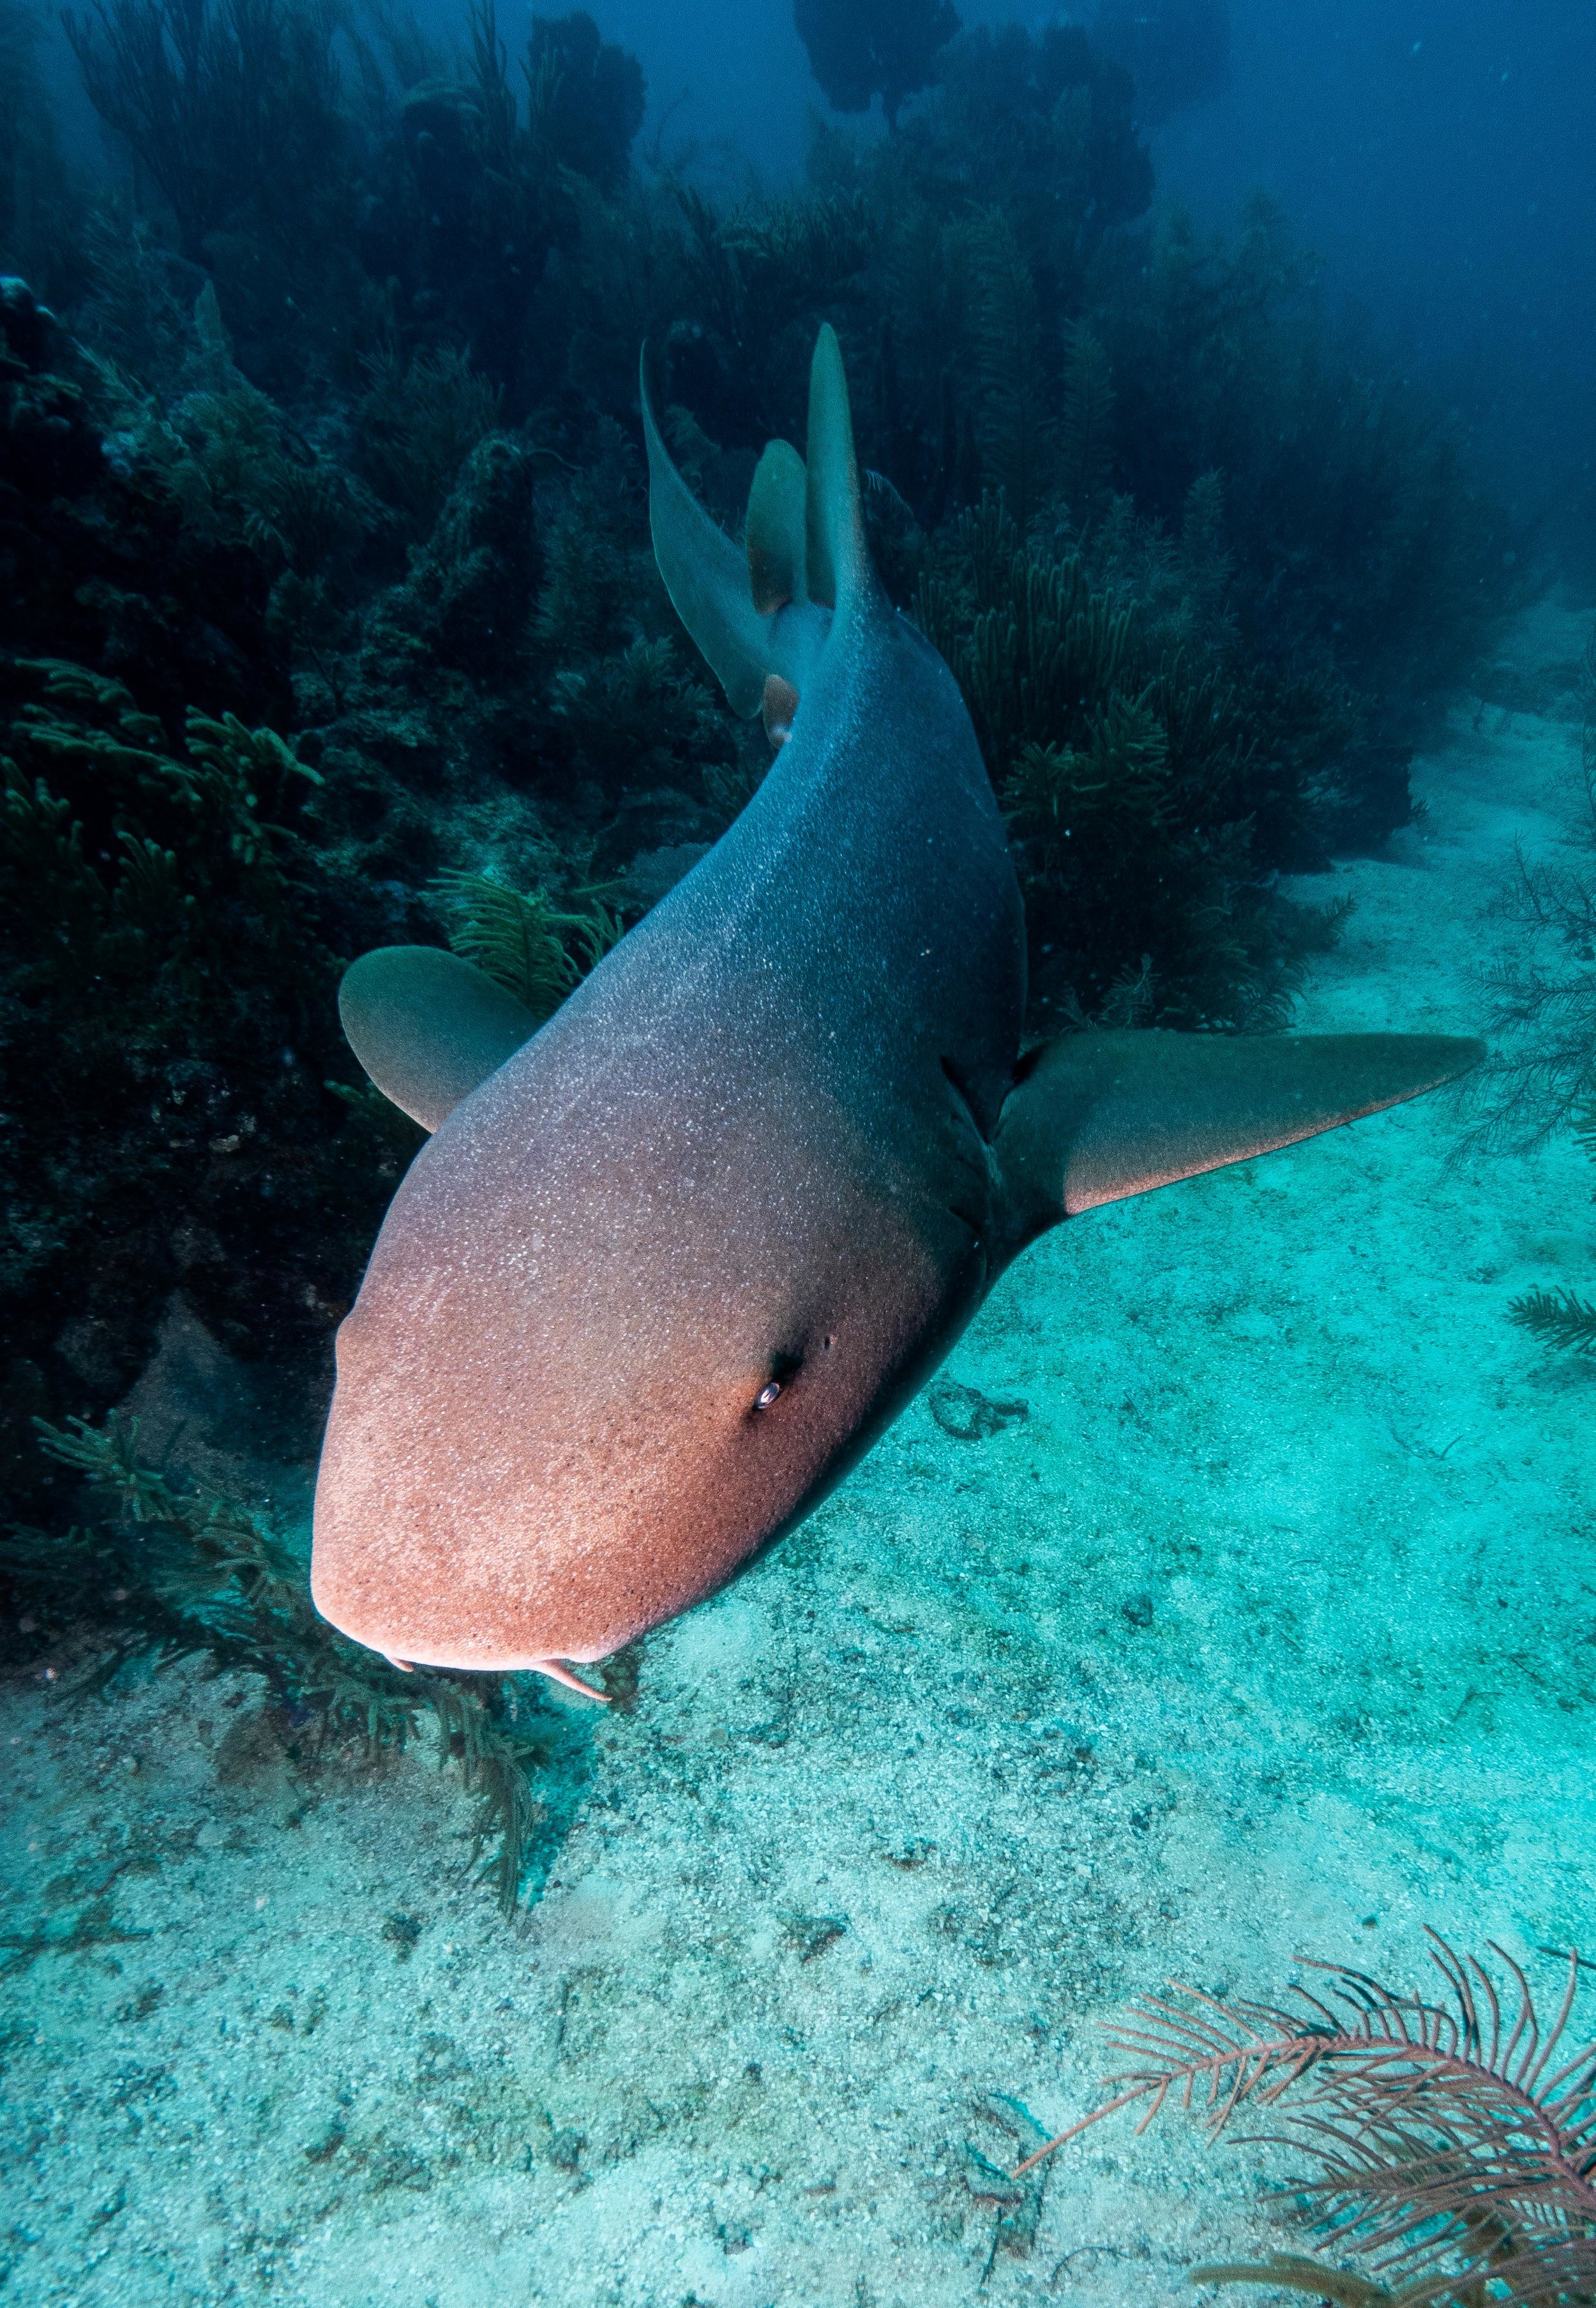 A nurse shark follows divers at Silk Caye, Belize. It has been fed lionfish in an attempt to teach the shark to eat lionfish. Here, it seems that this shark has only learned to be fed by divers.